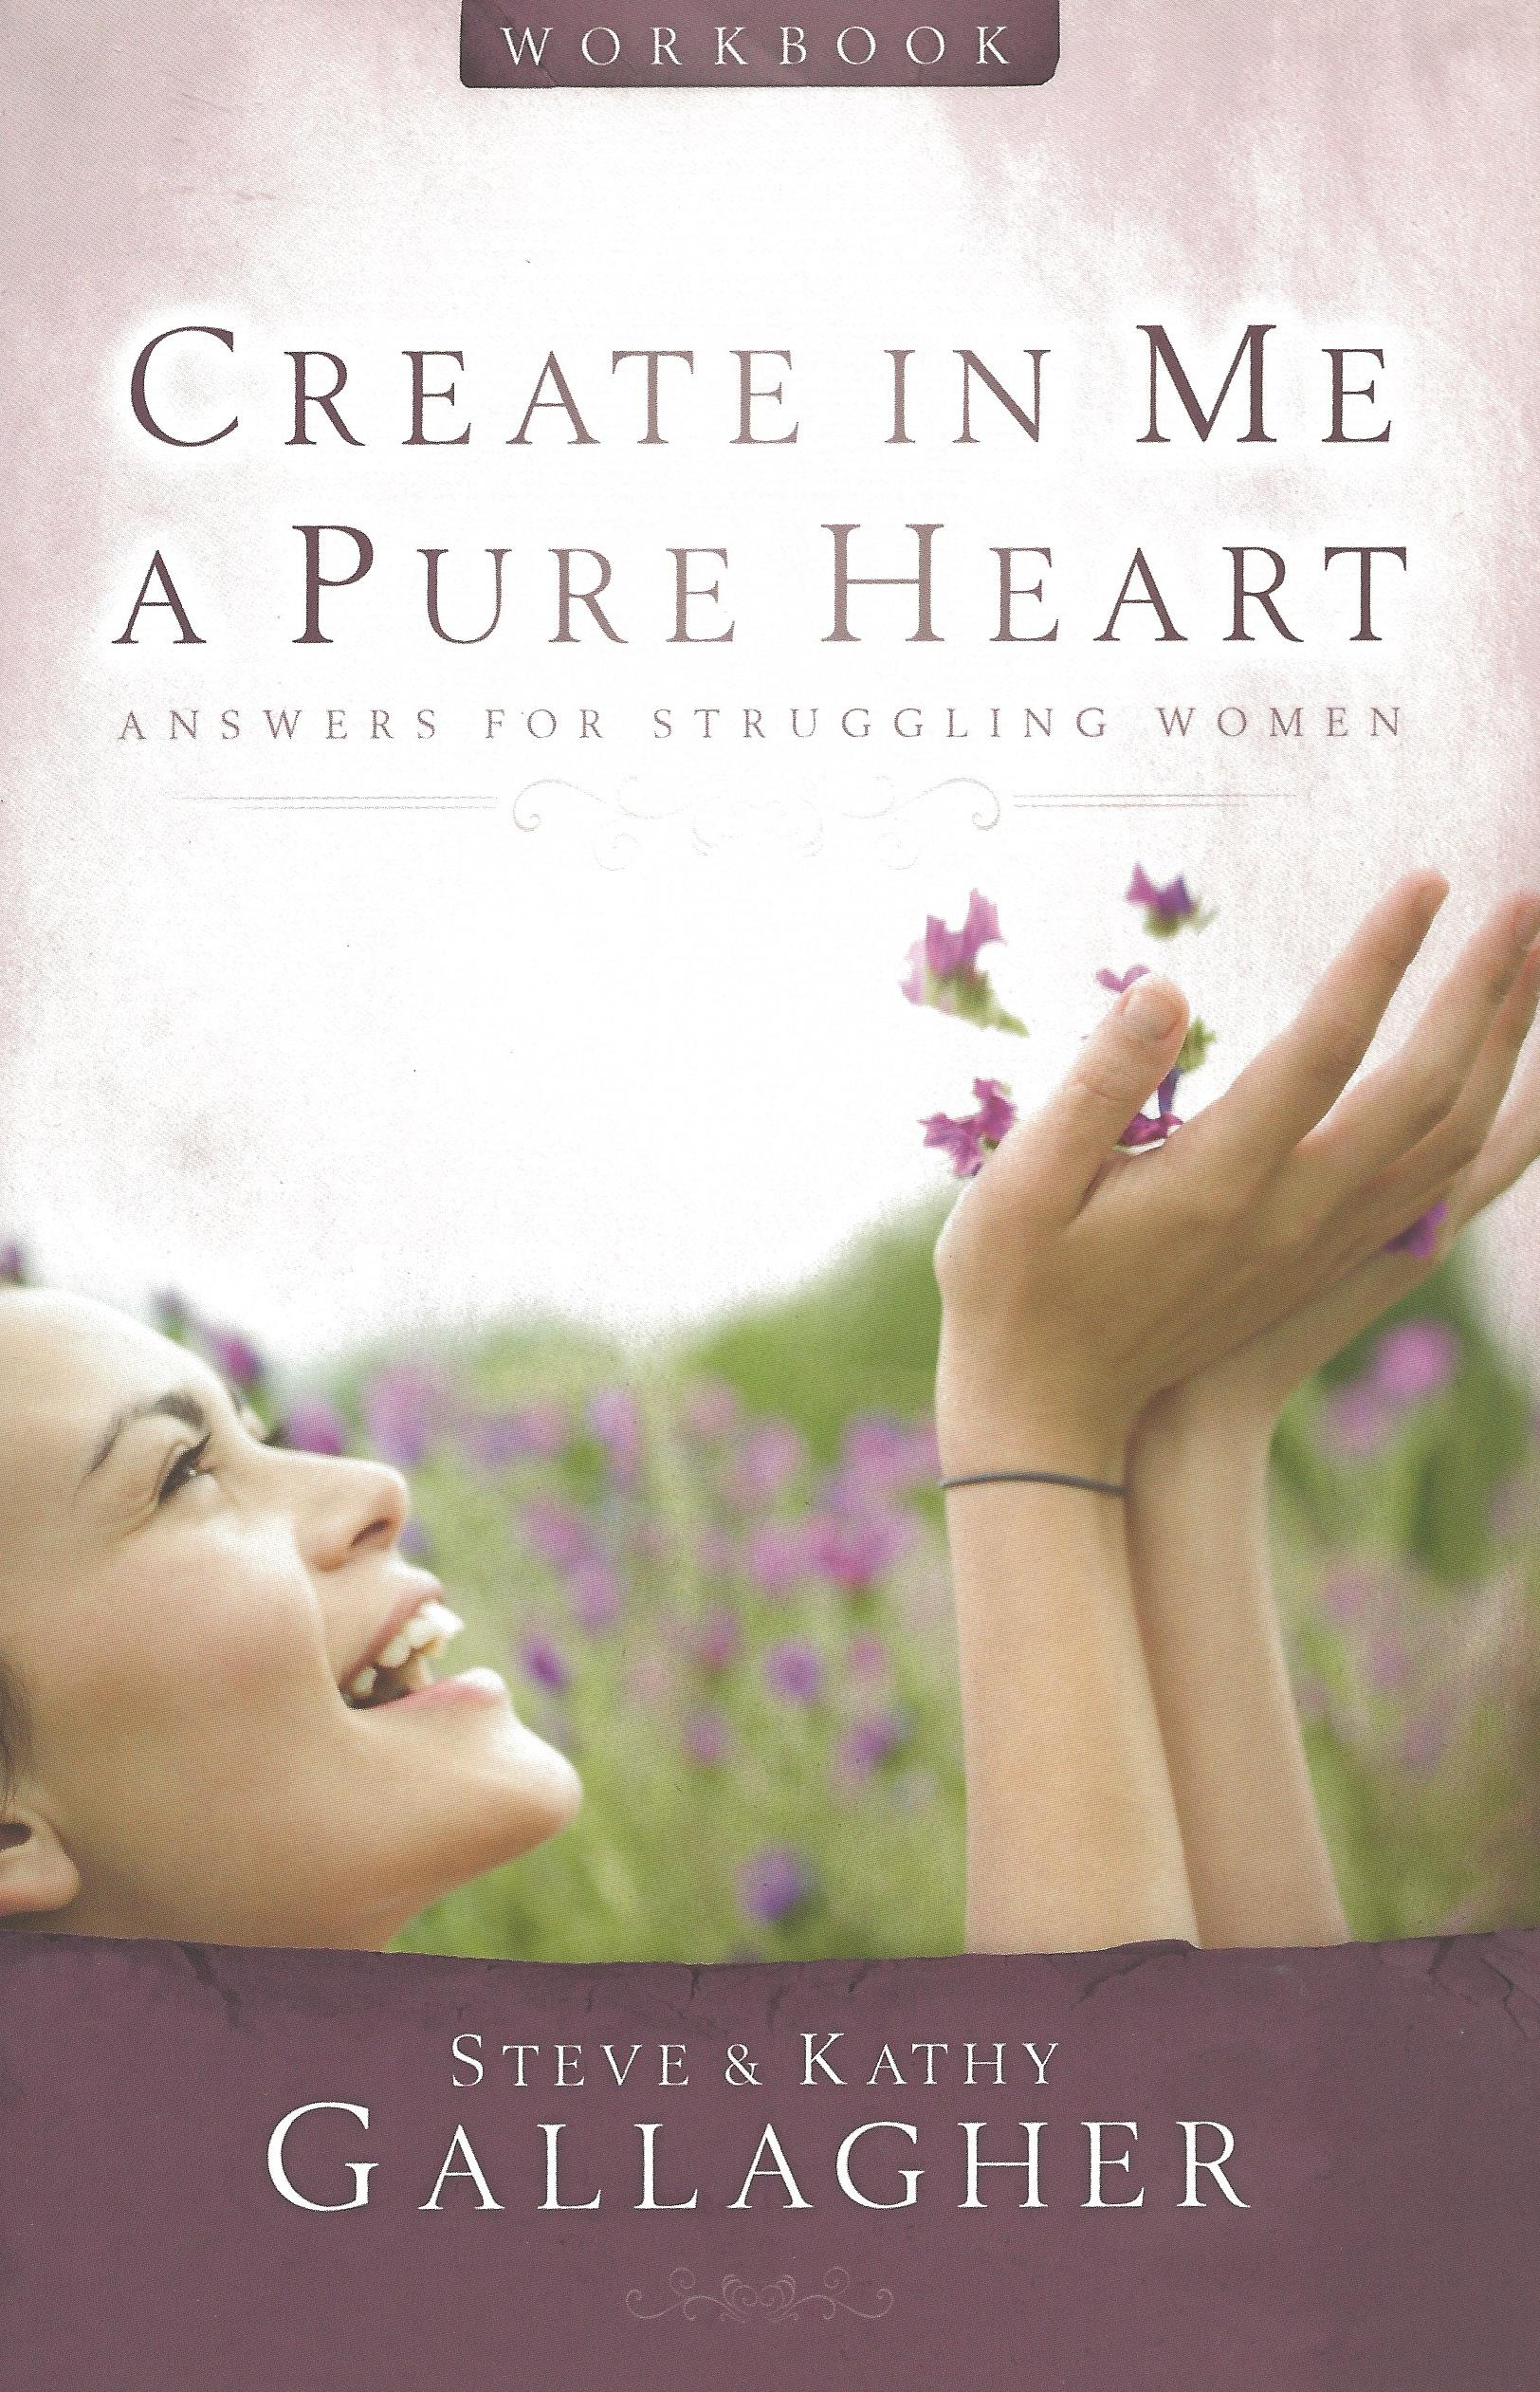 CREATE IN ME A PURE HEART WORKBOOK Steve & Kathy Gallagher